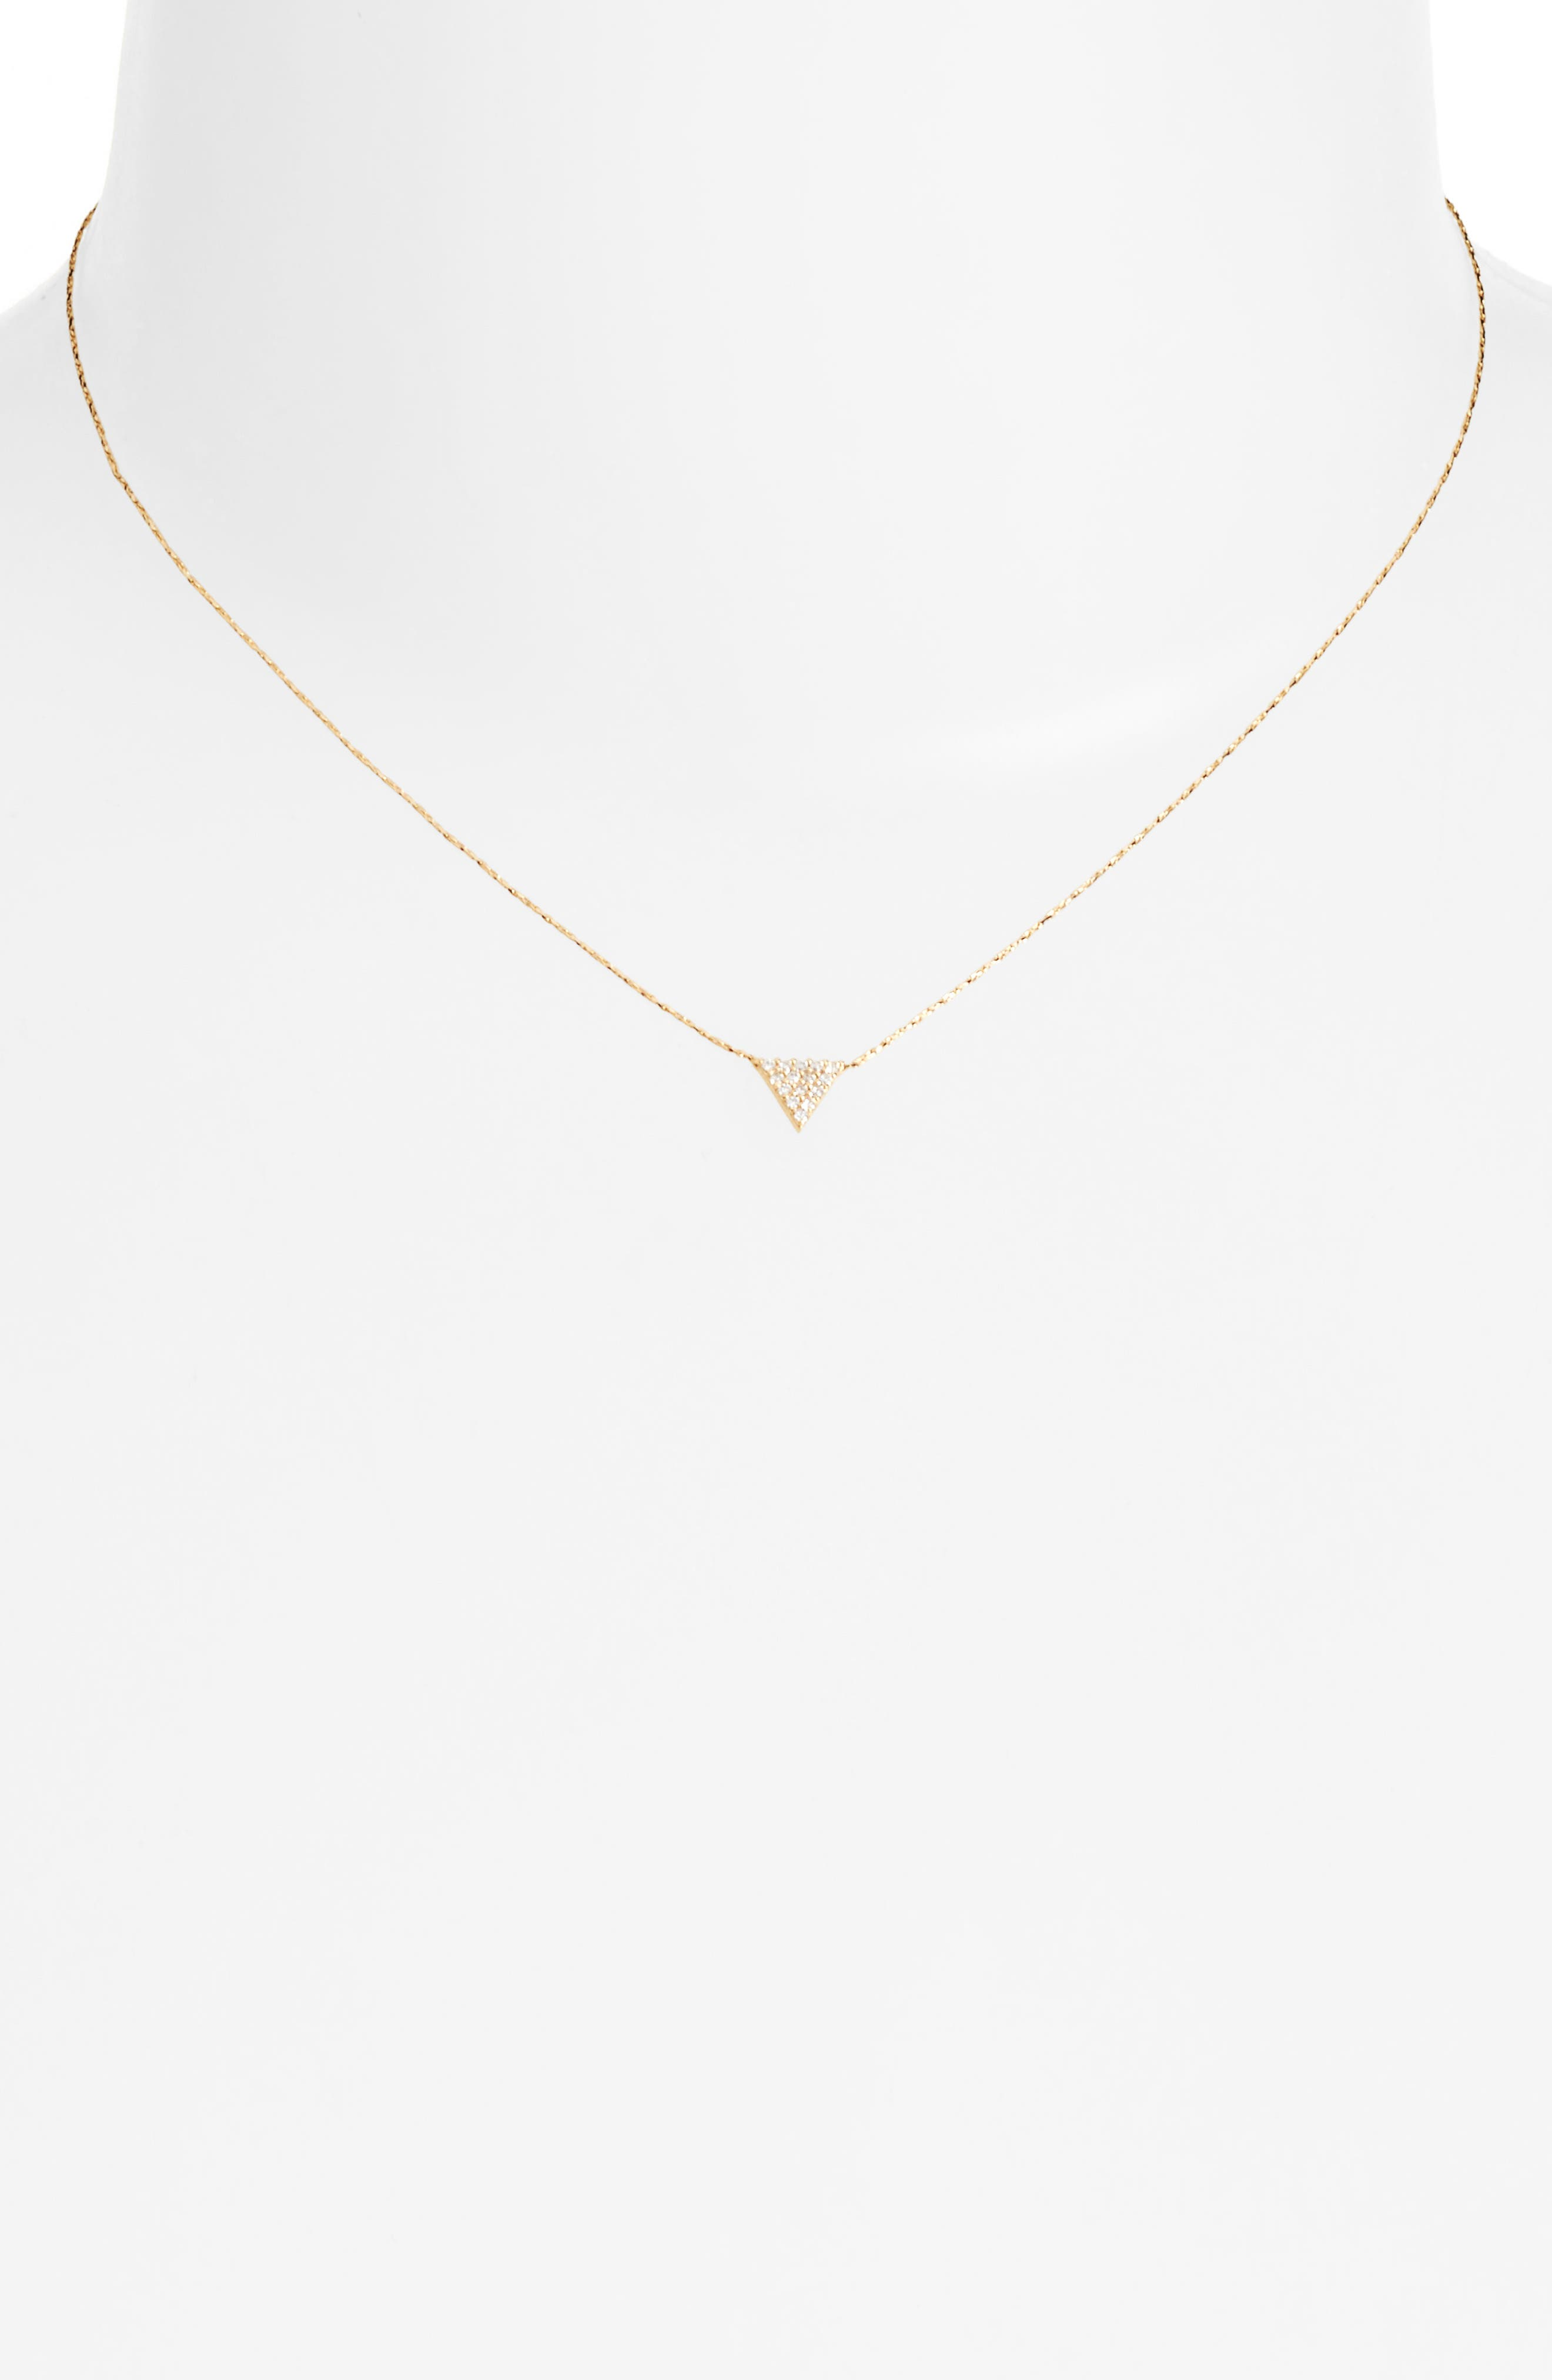 Franz Cubic Zirconia Necklace,                             Main thumbnail 1, color,                             Gold/ Clear